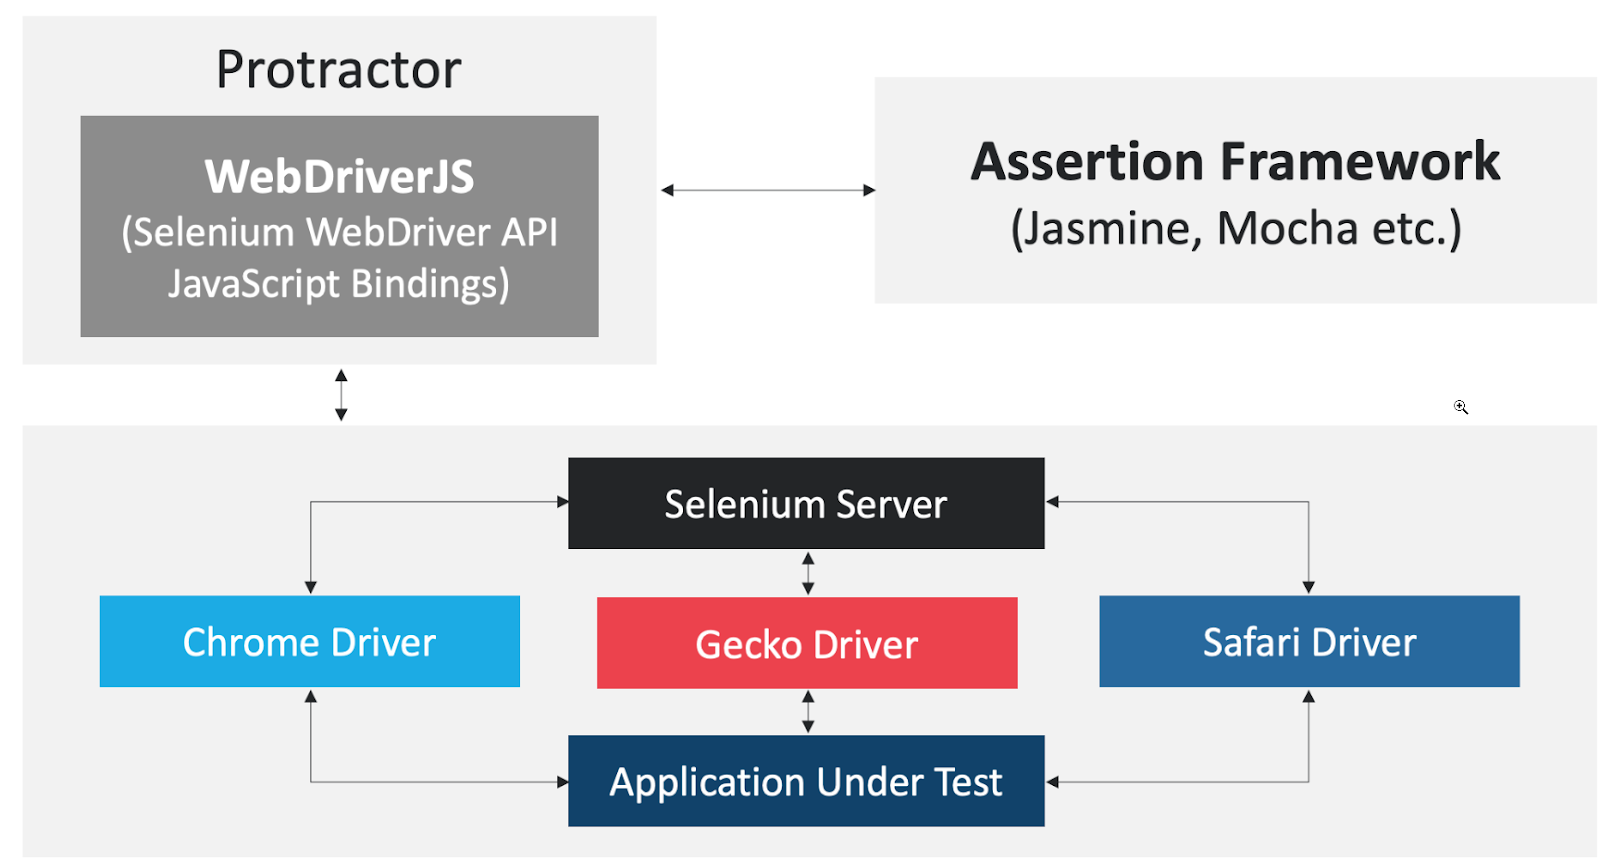 Building a Selenium-based testing framework with Protractor and TypeScript